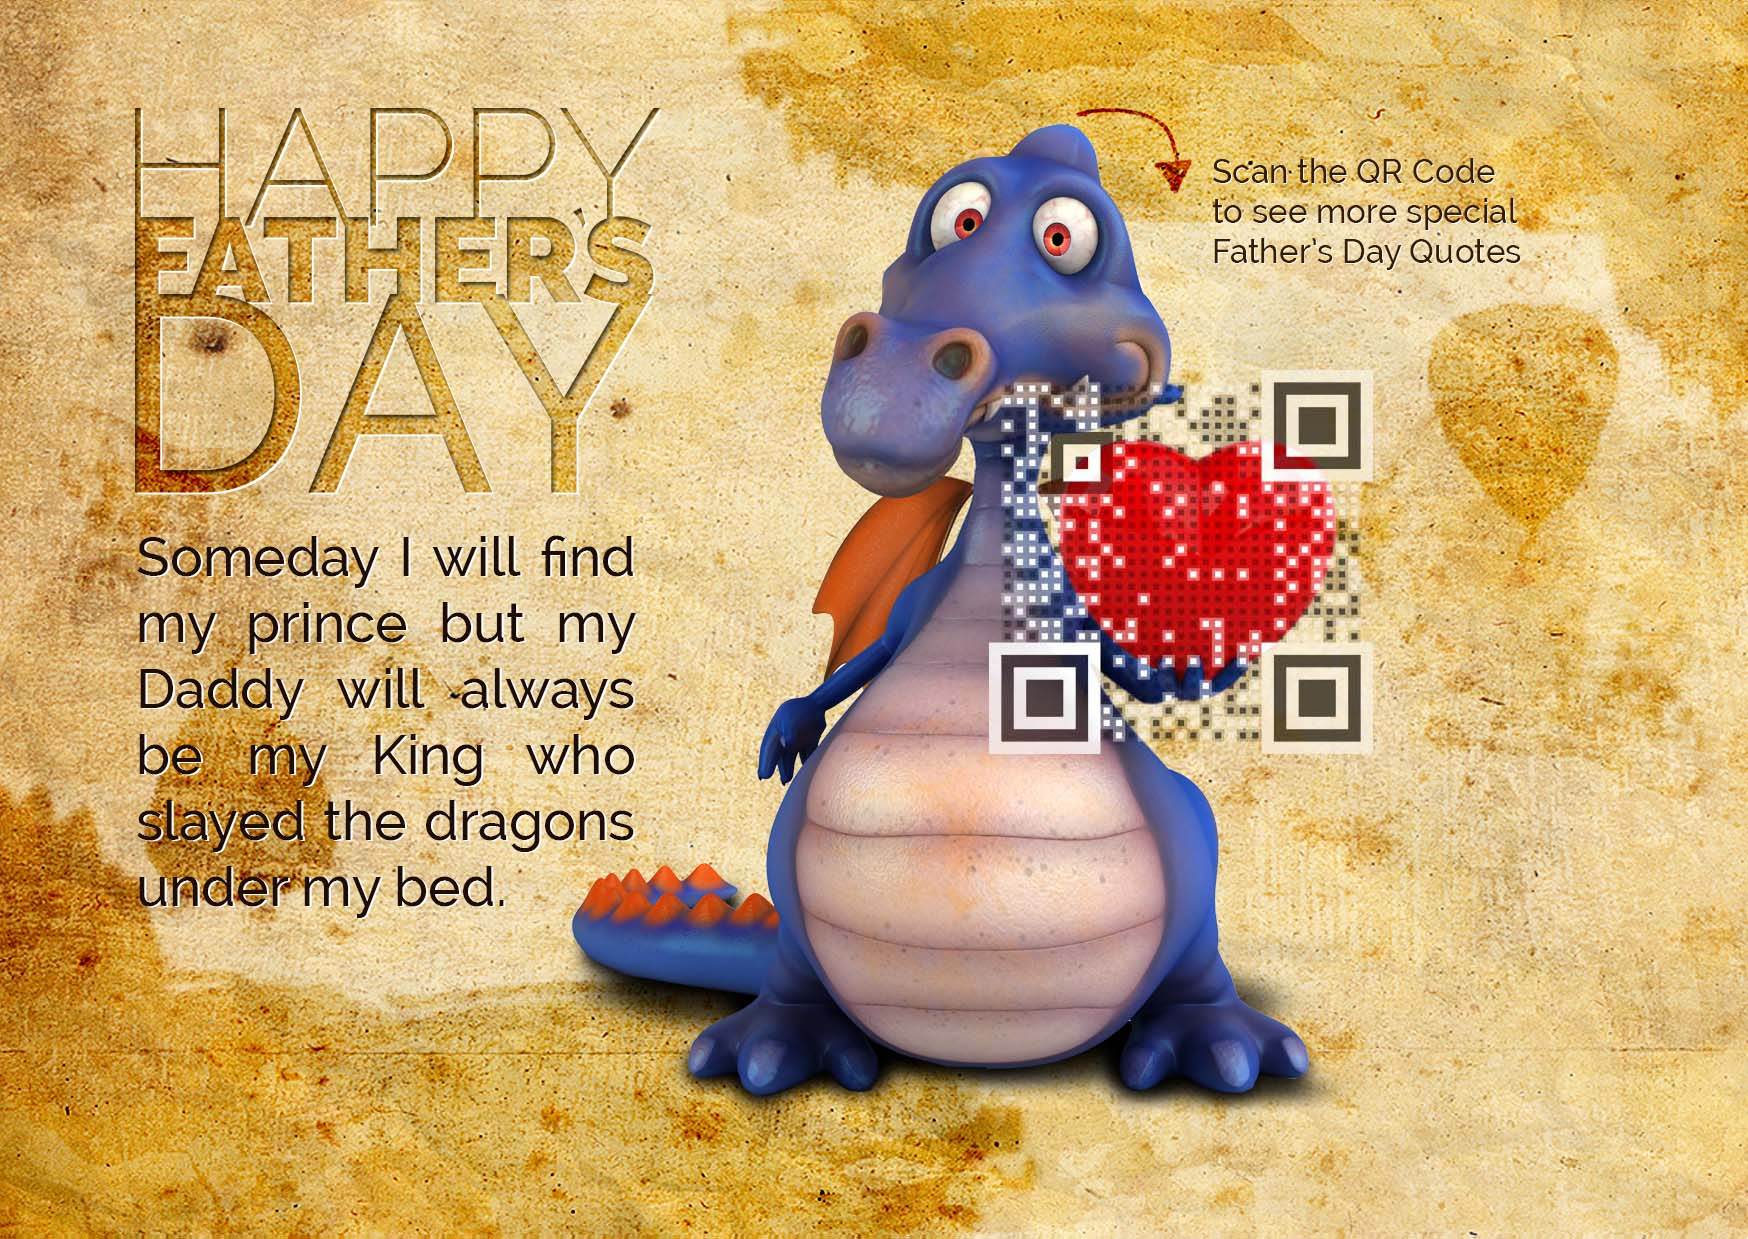 Fathersday_Quotes_01